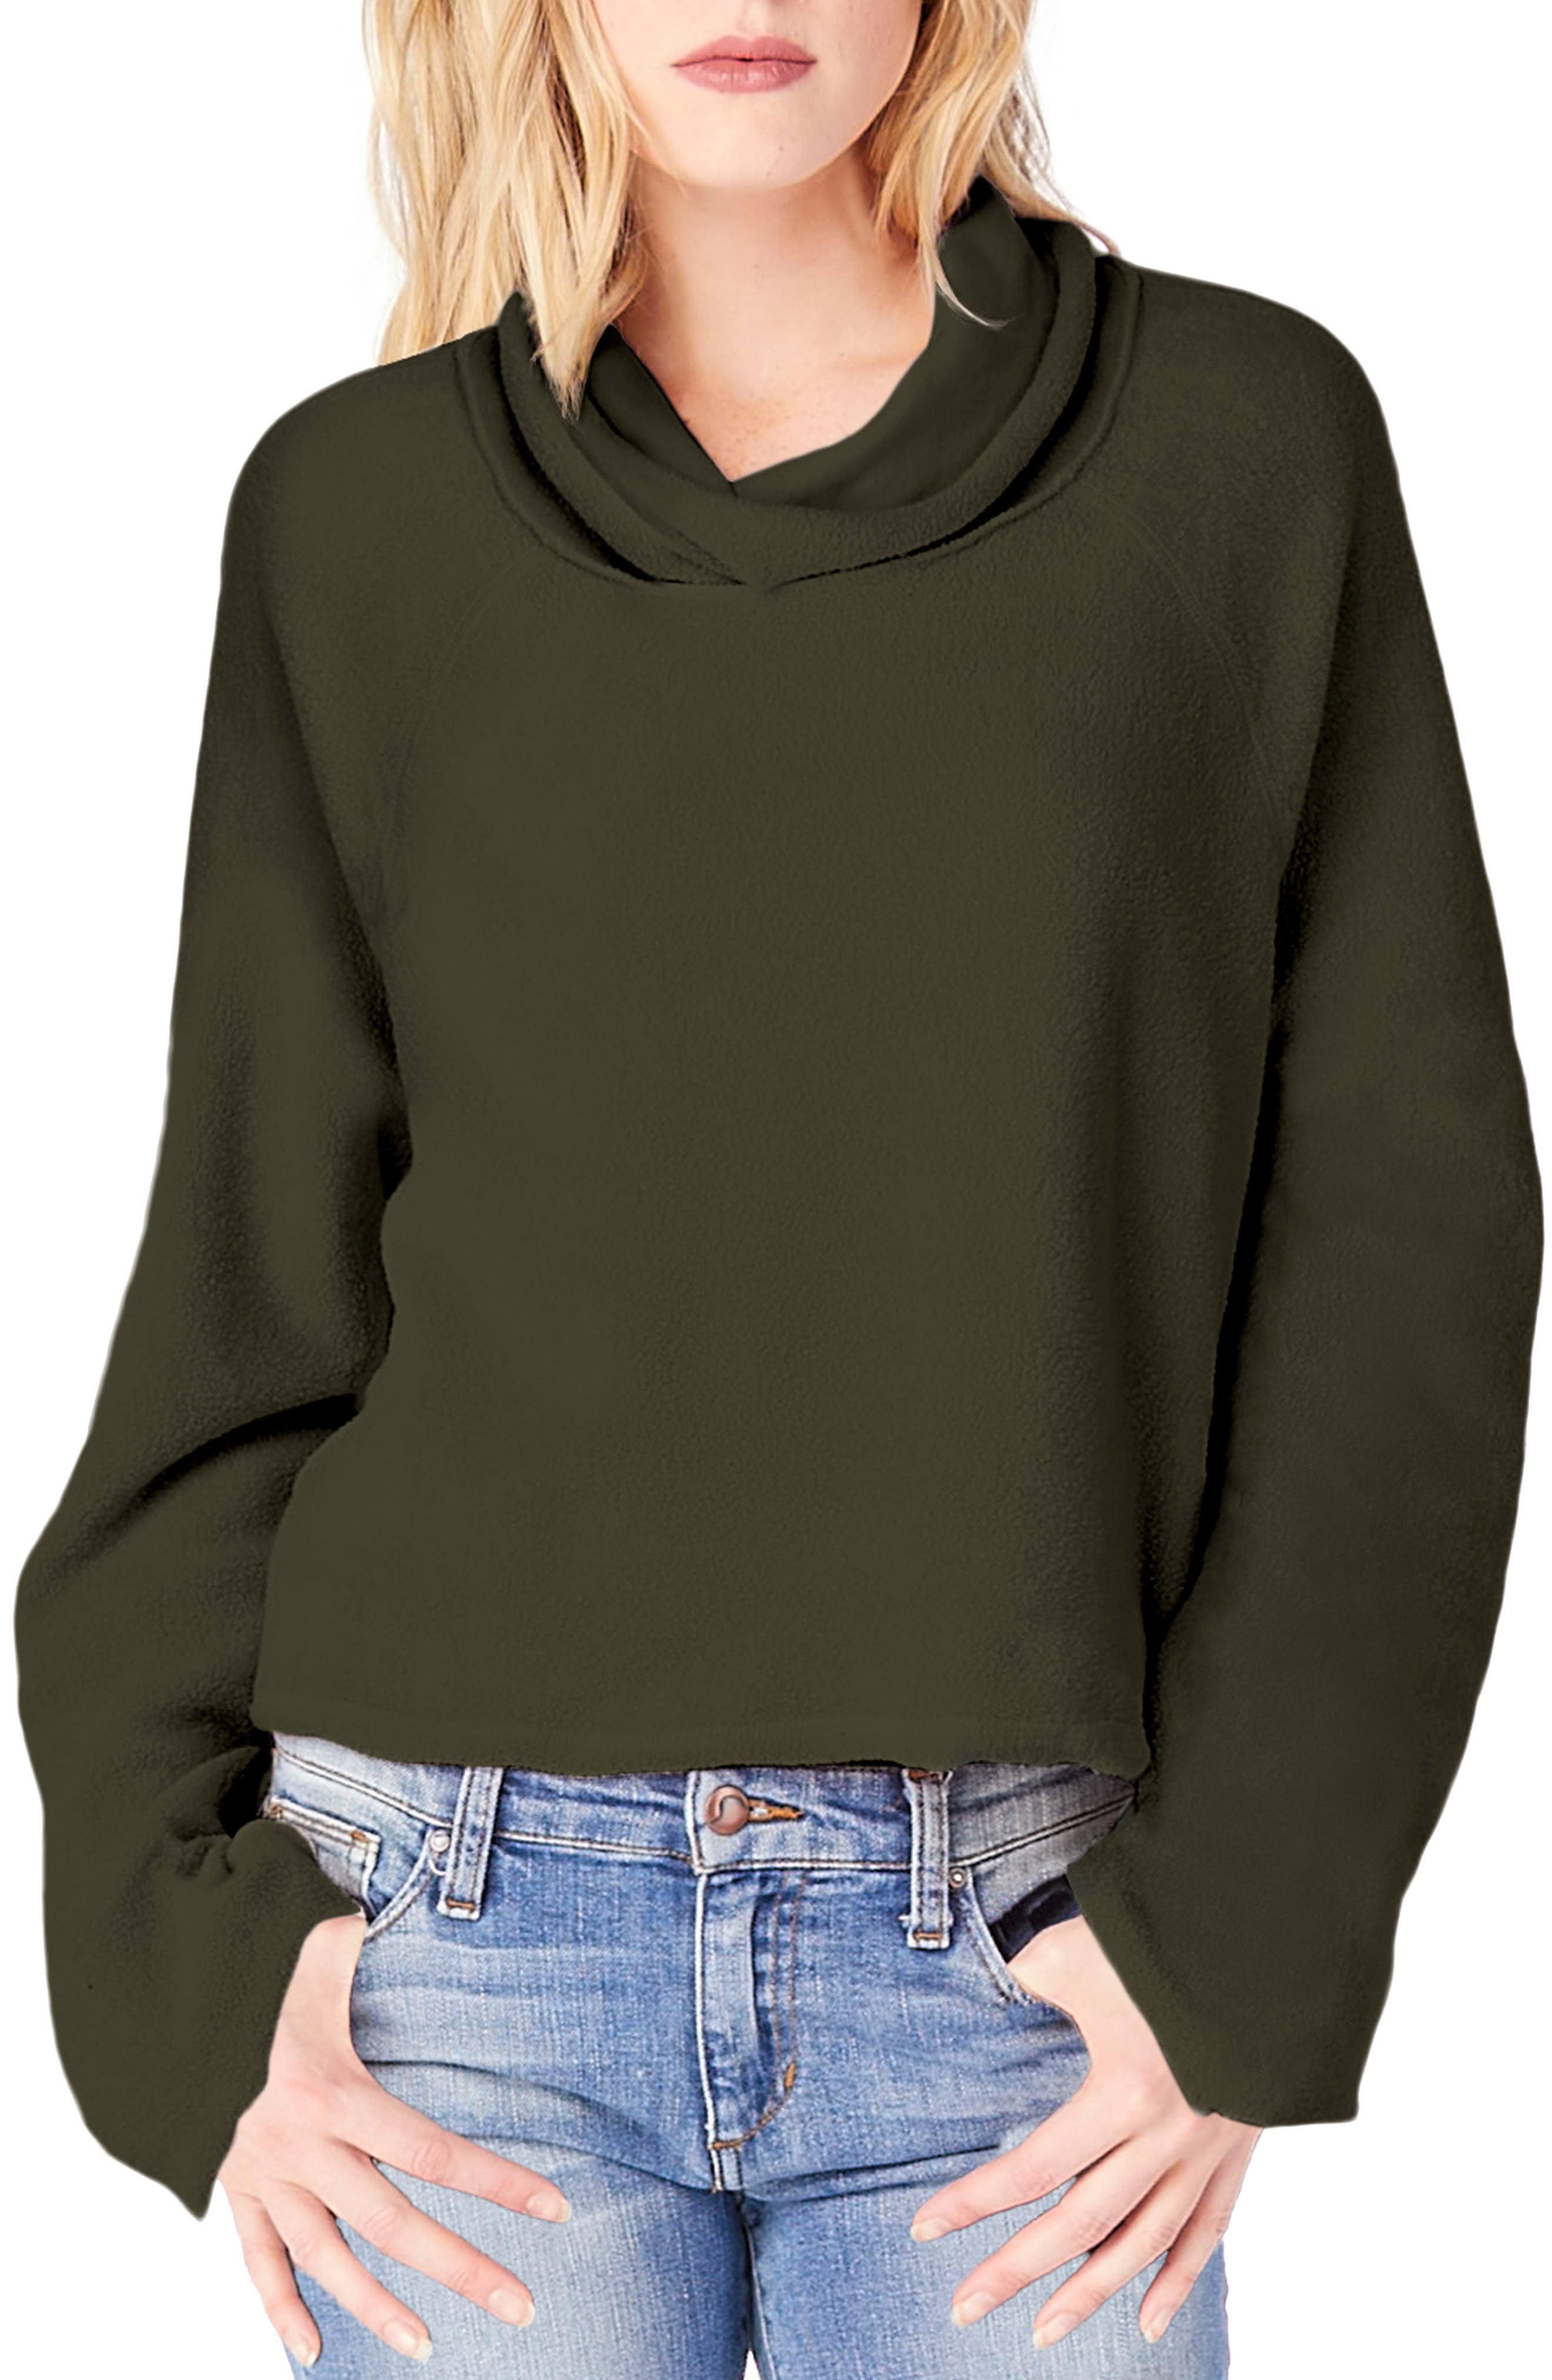 Reversible Raglan Sleeve Turtleneck Sweater,                             Main thumbnail 1, color,                             Loden